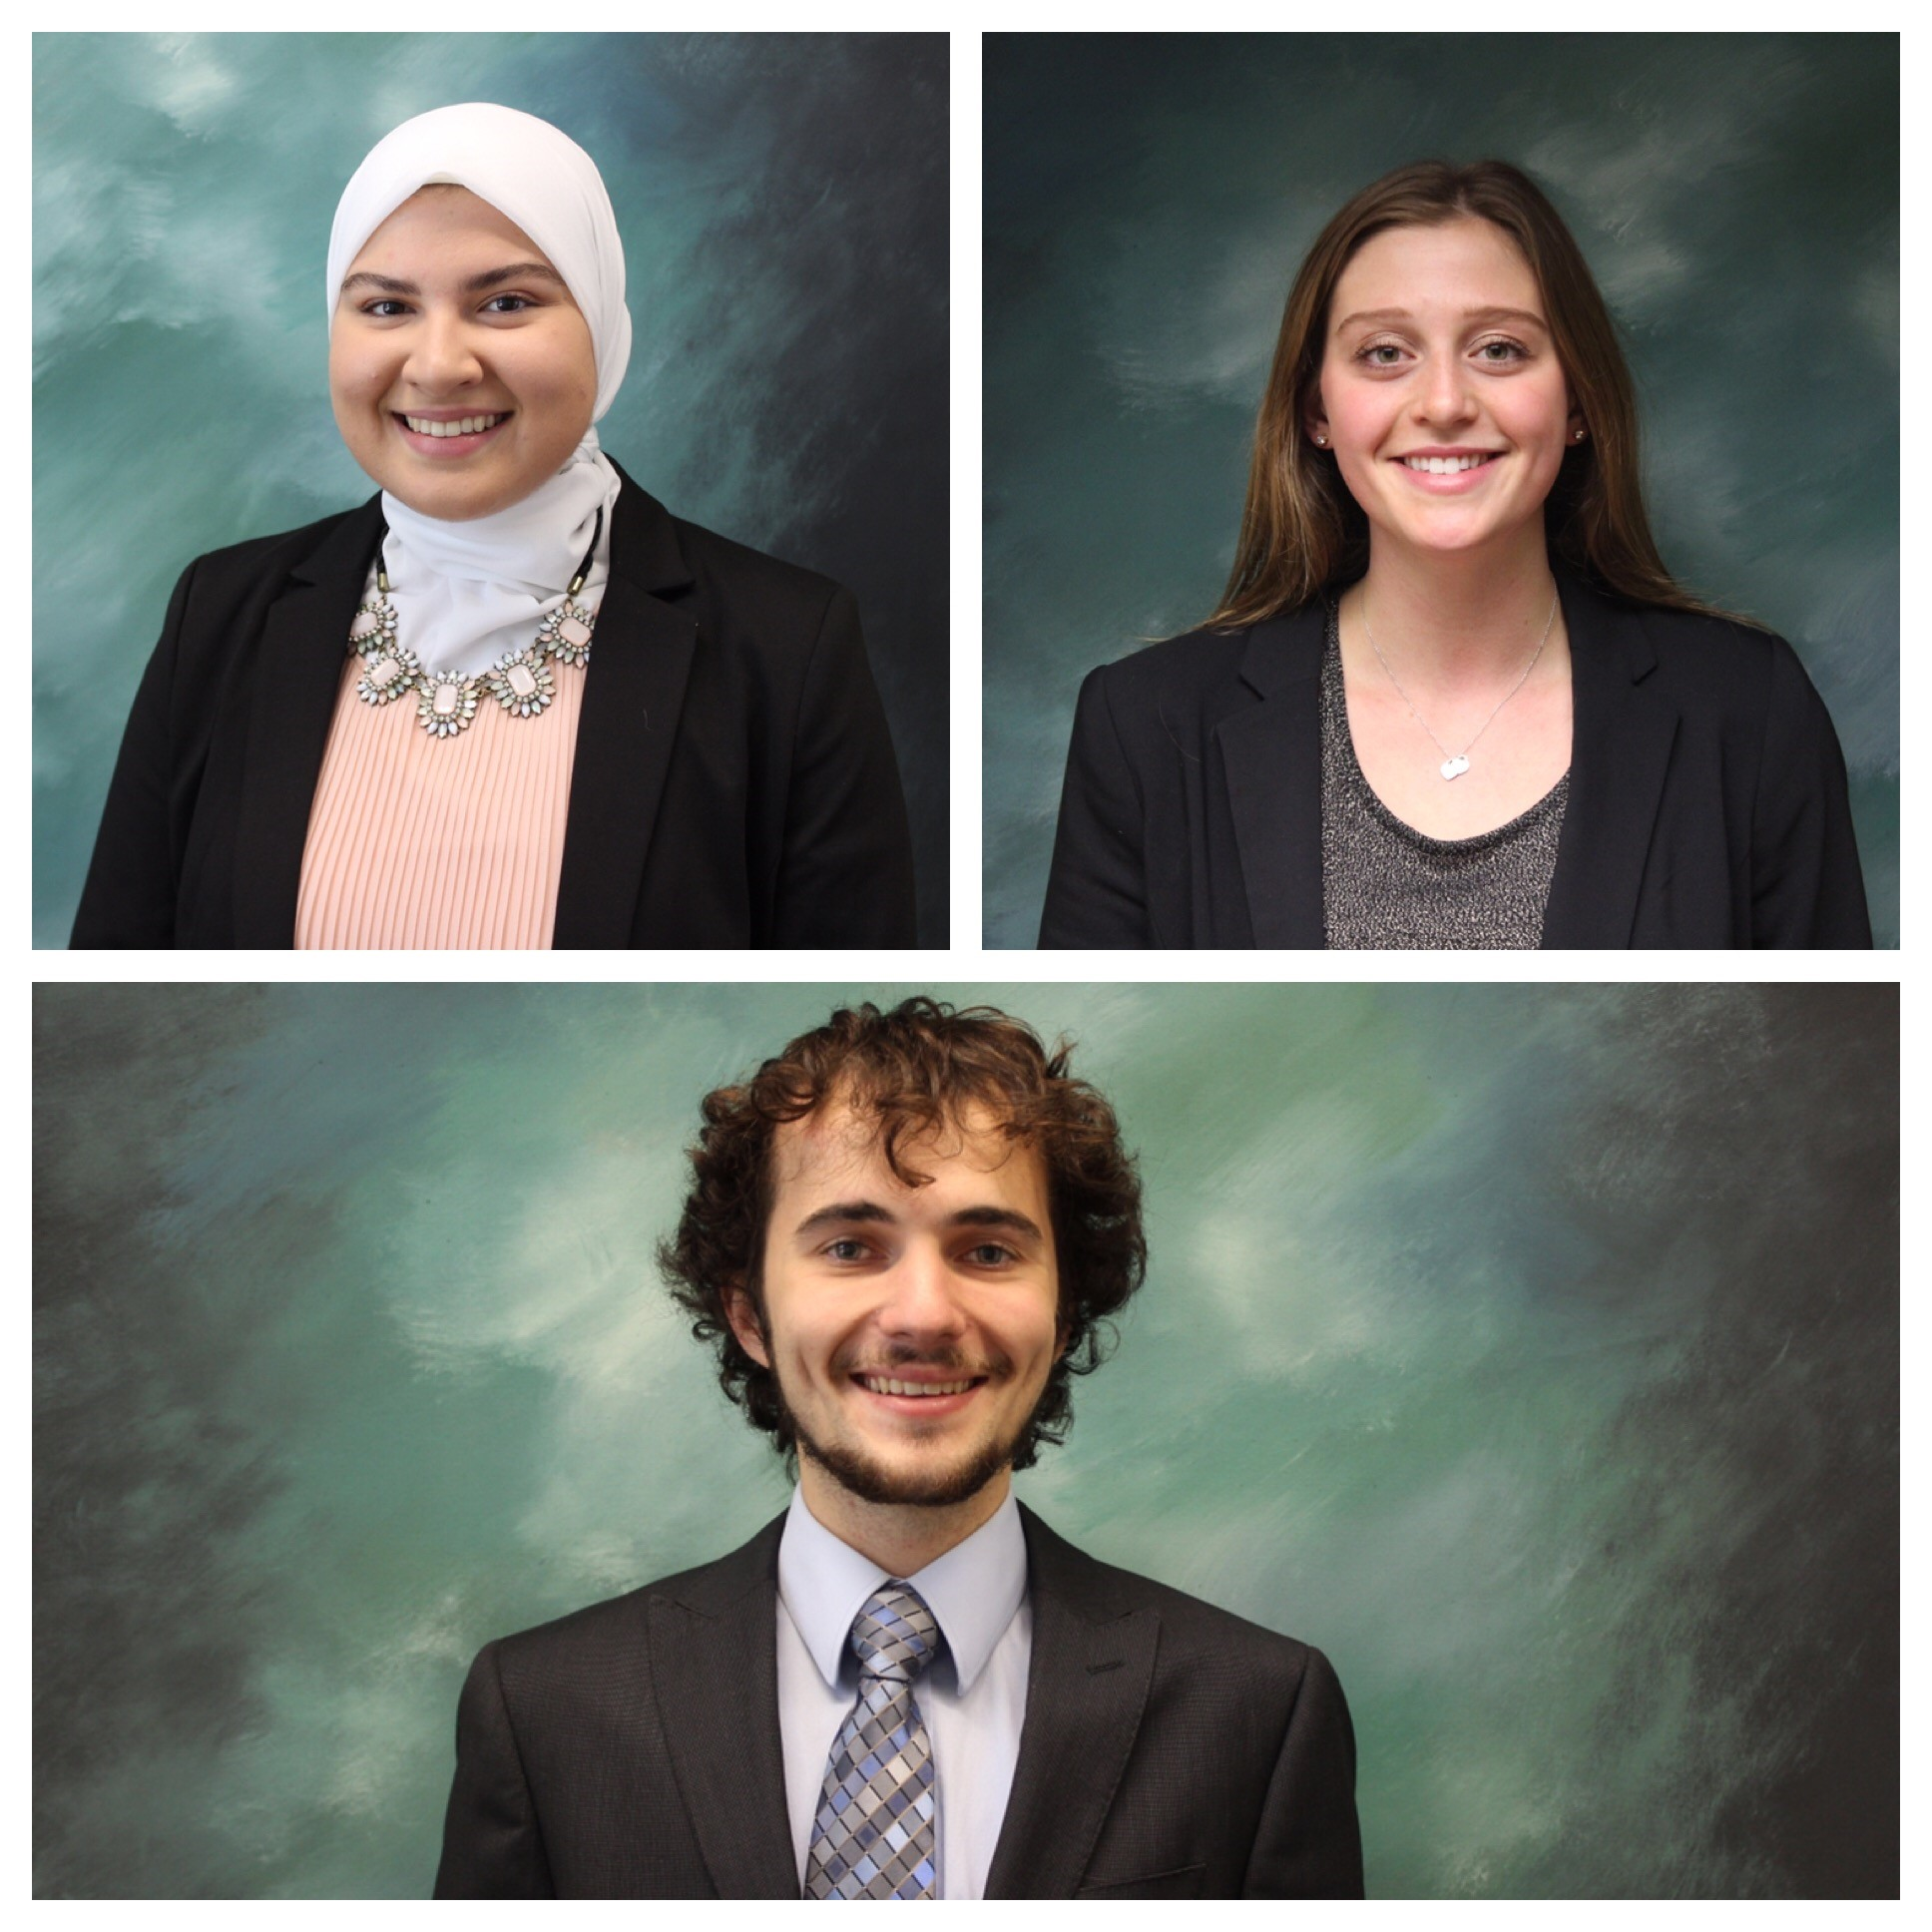 Michigan State University students named finalists for Mitchell, Rhodes scholarships